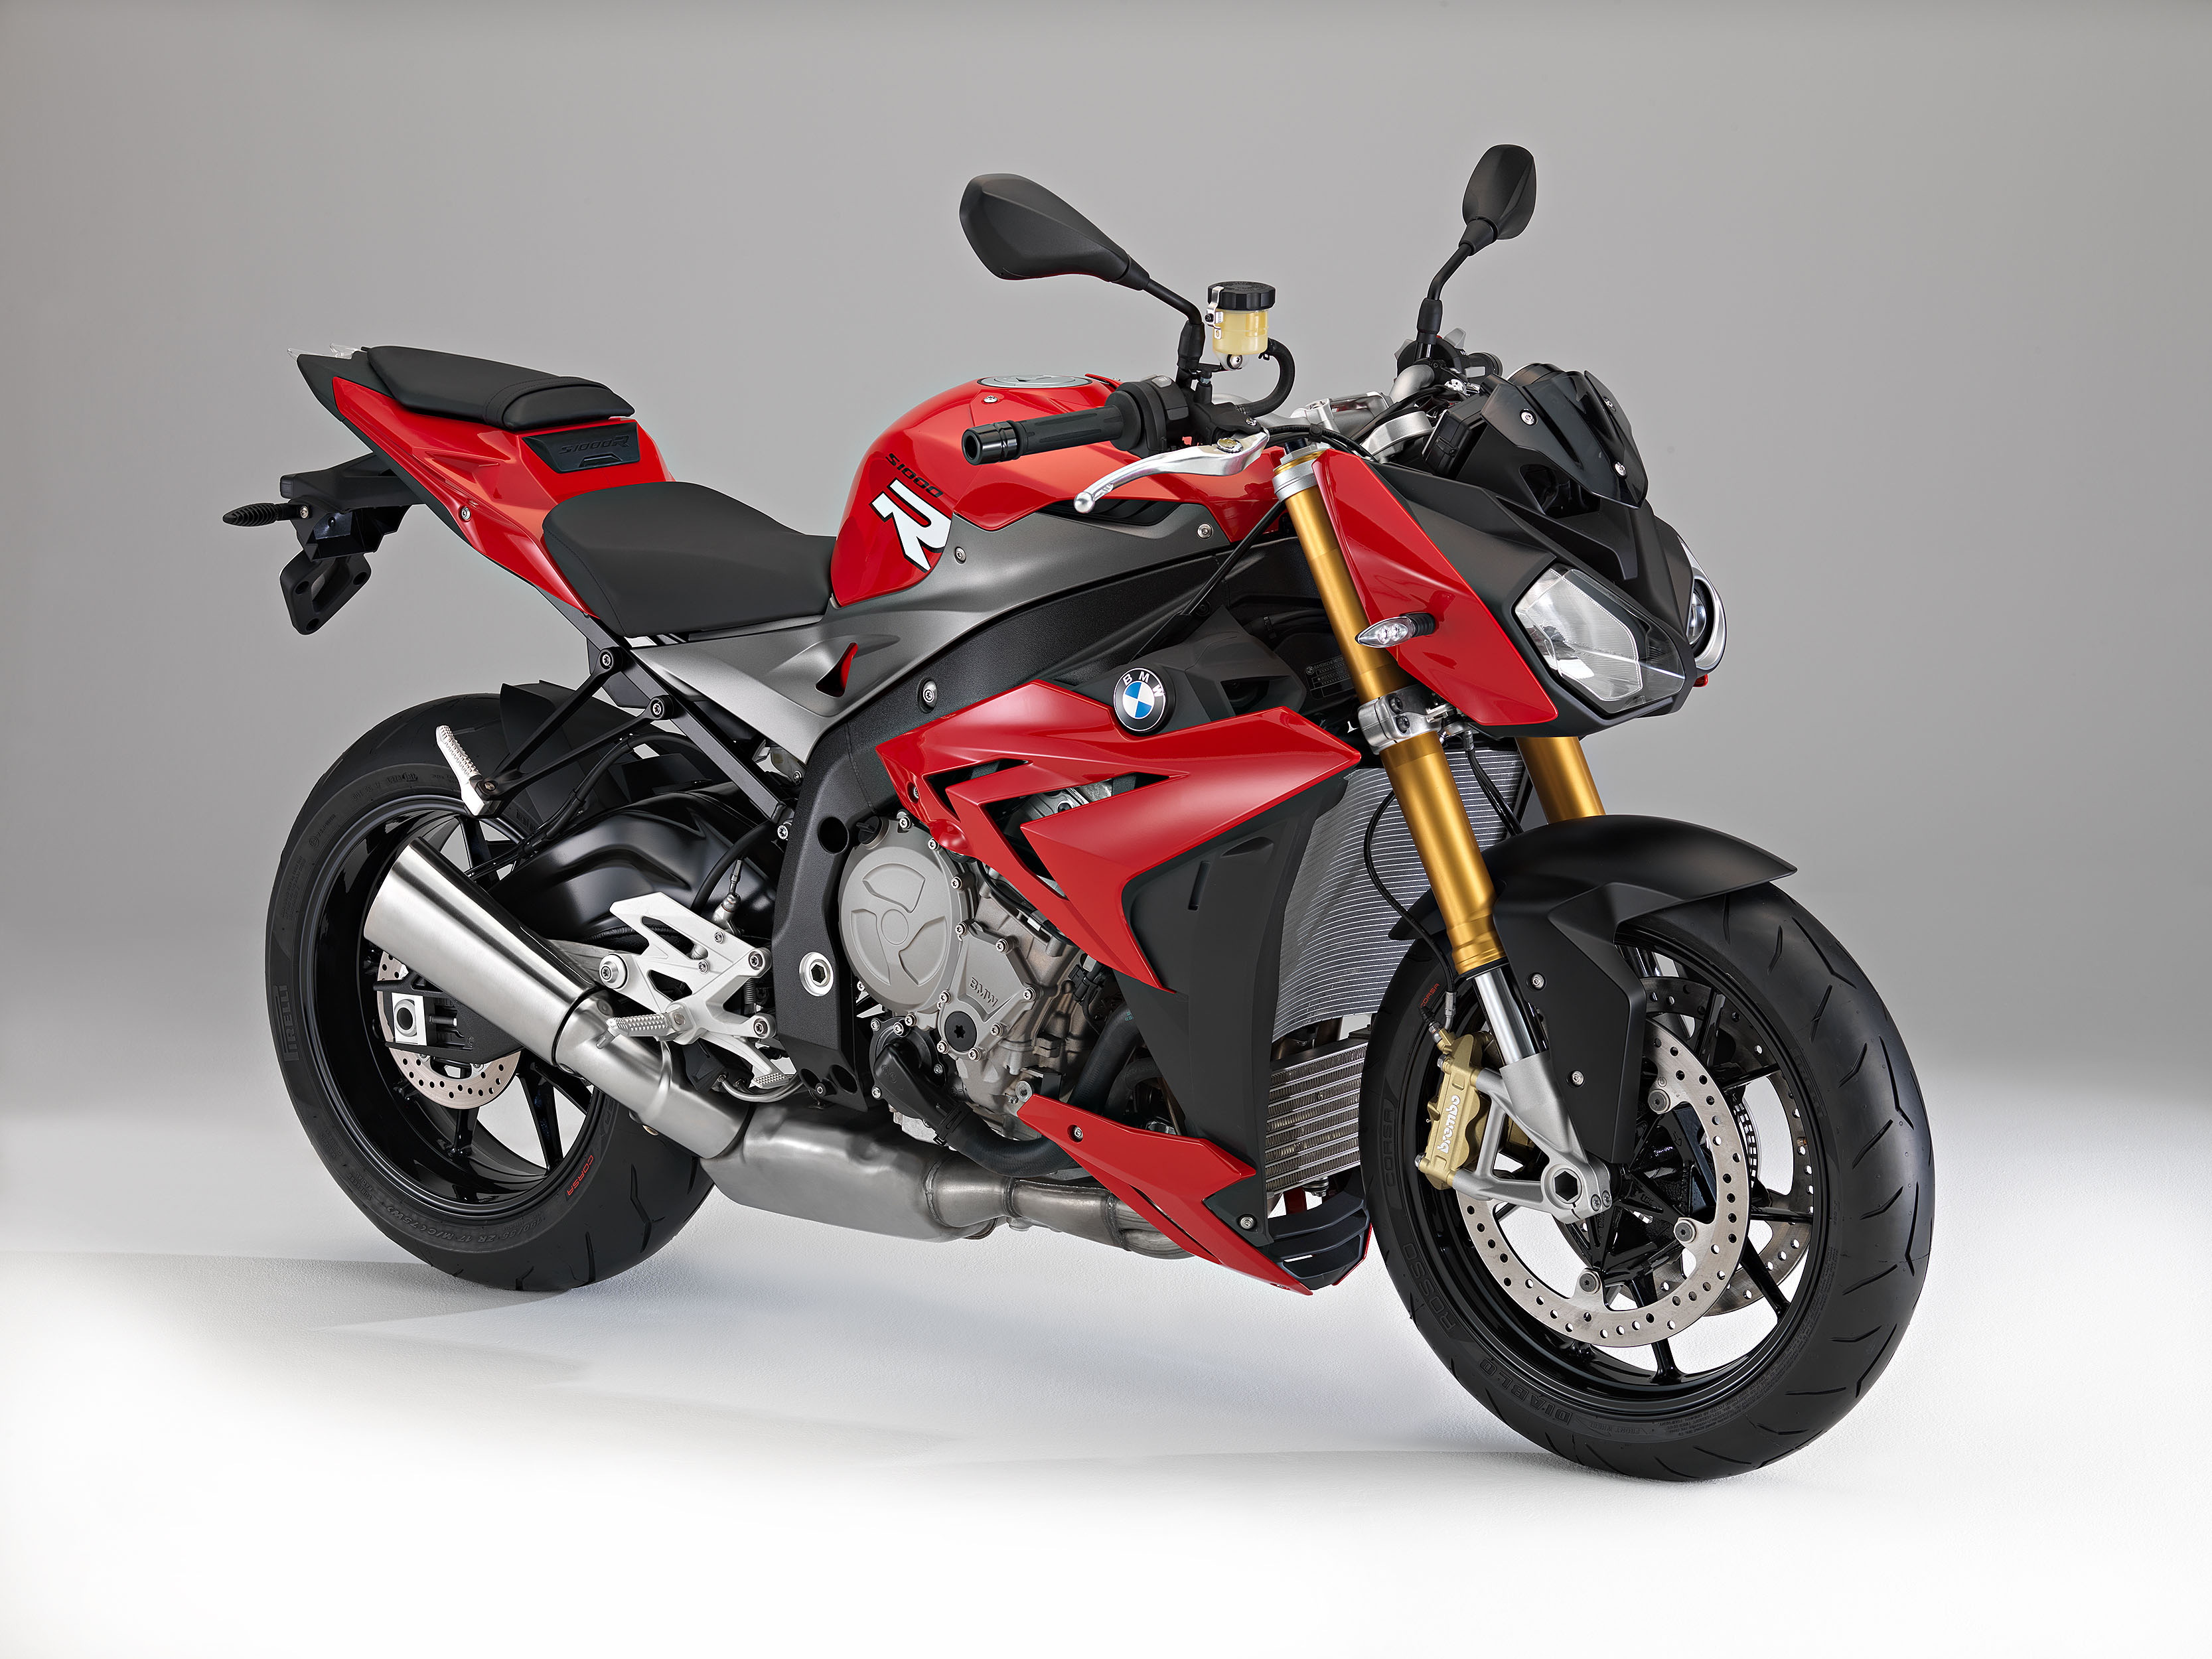 bmw s1000r launched in india bike news bikes 800cc. Black Bedroom Furniture Sets. Home Design Ideas